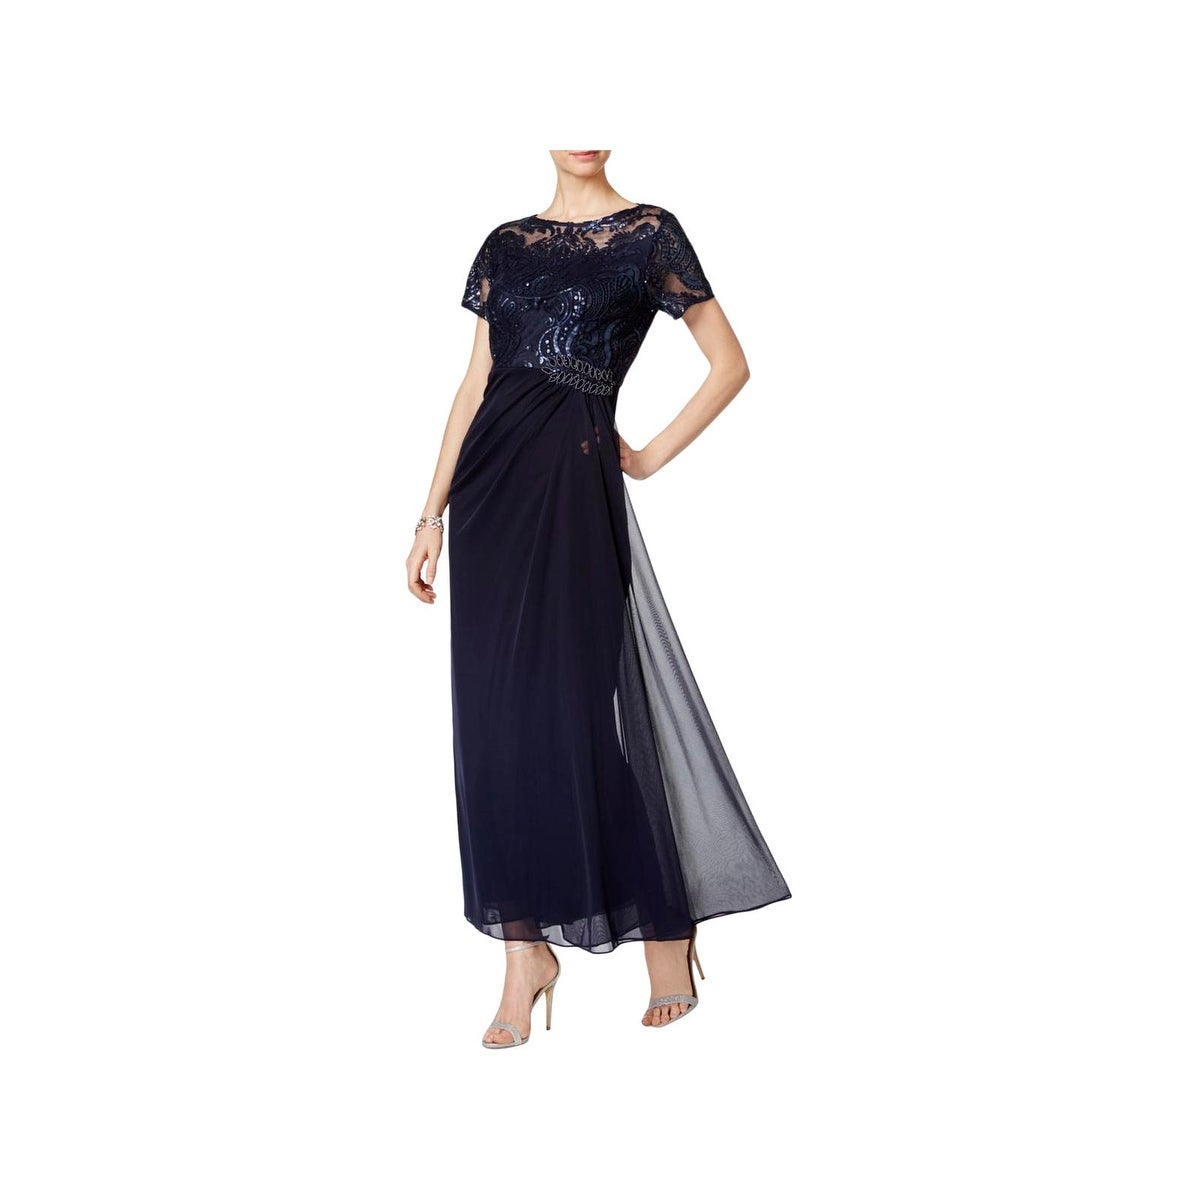 0b709bfad067 Alex Evenings Dresses | Find Great Women's Clothing Deals Shopping at  Overstock